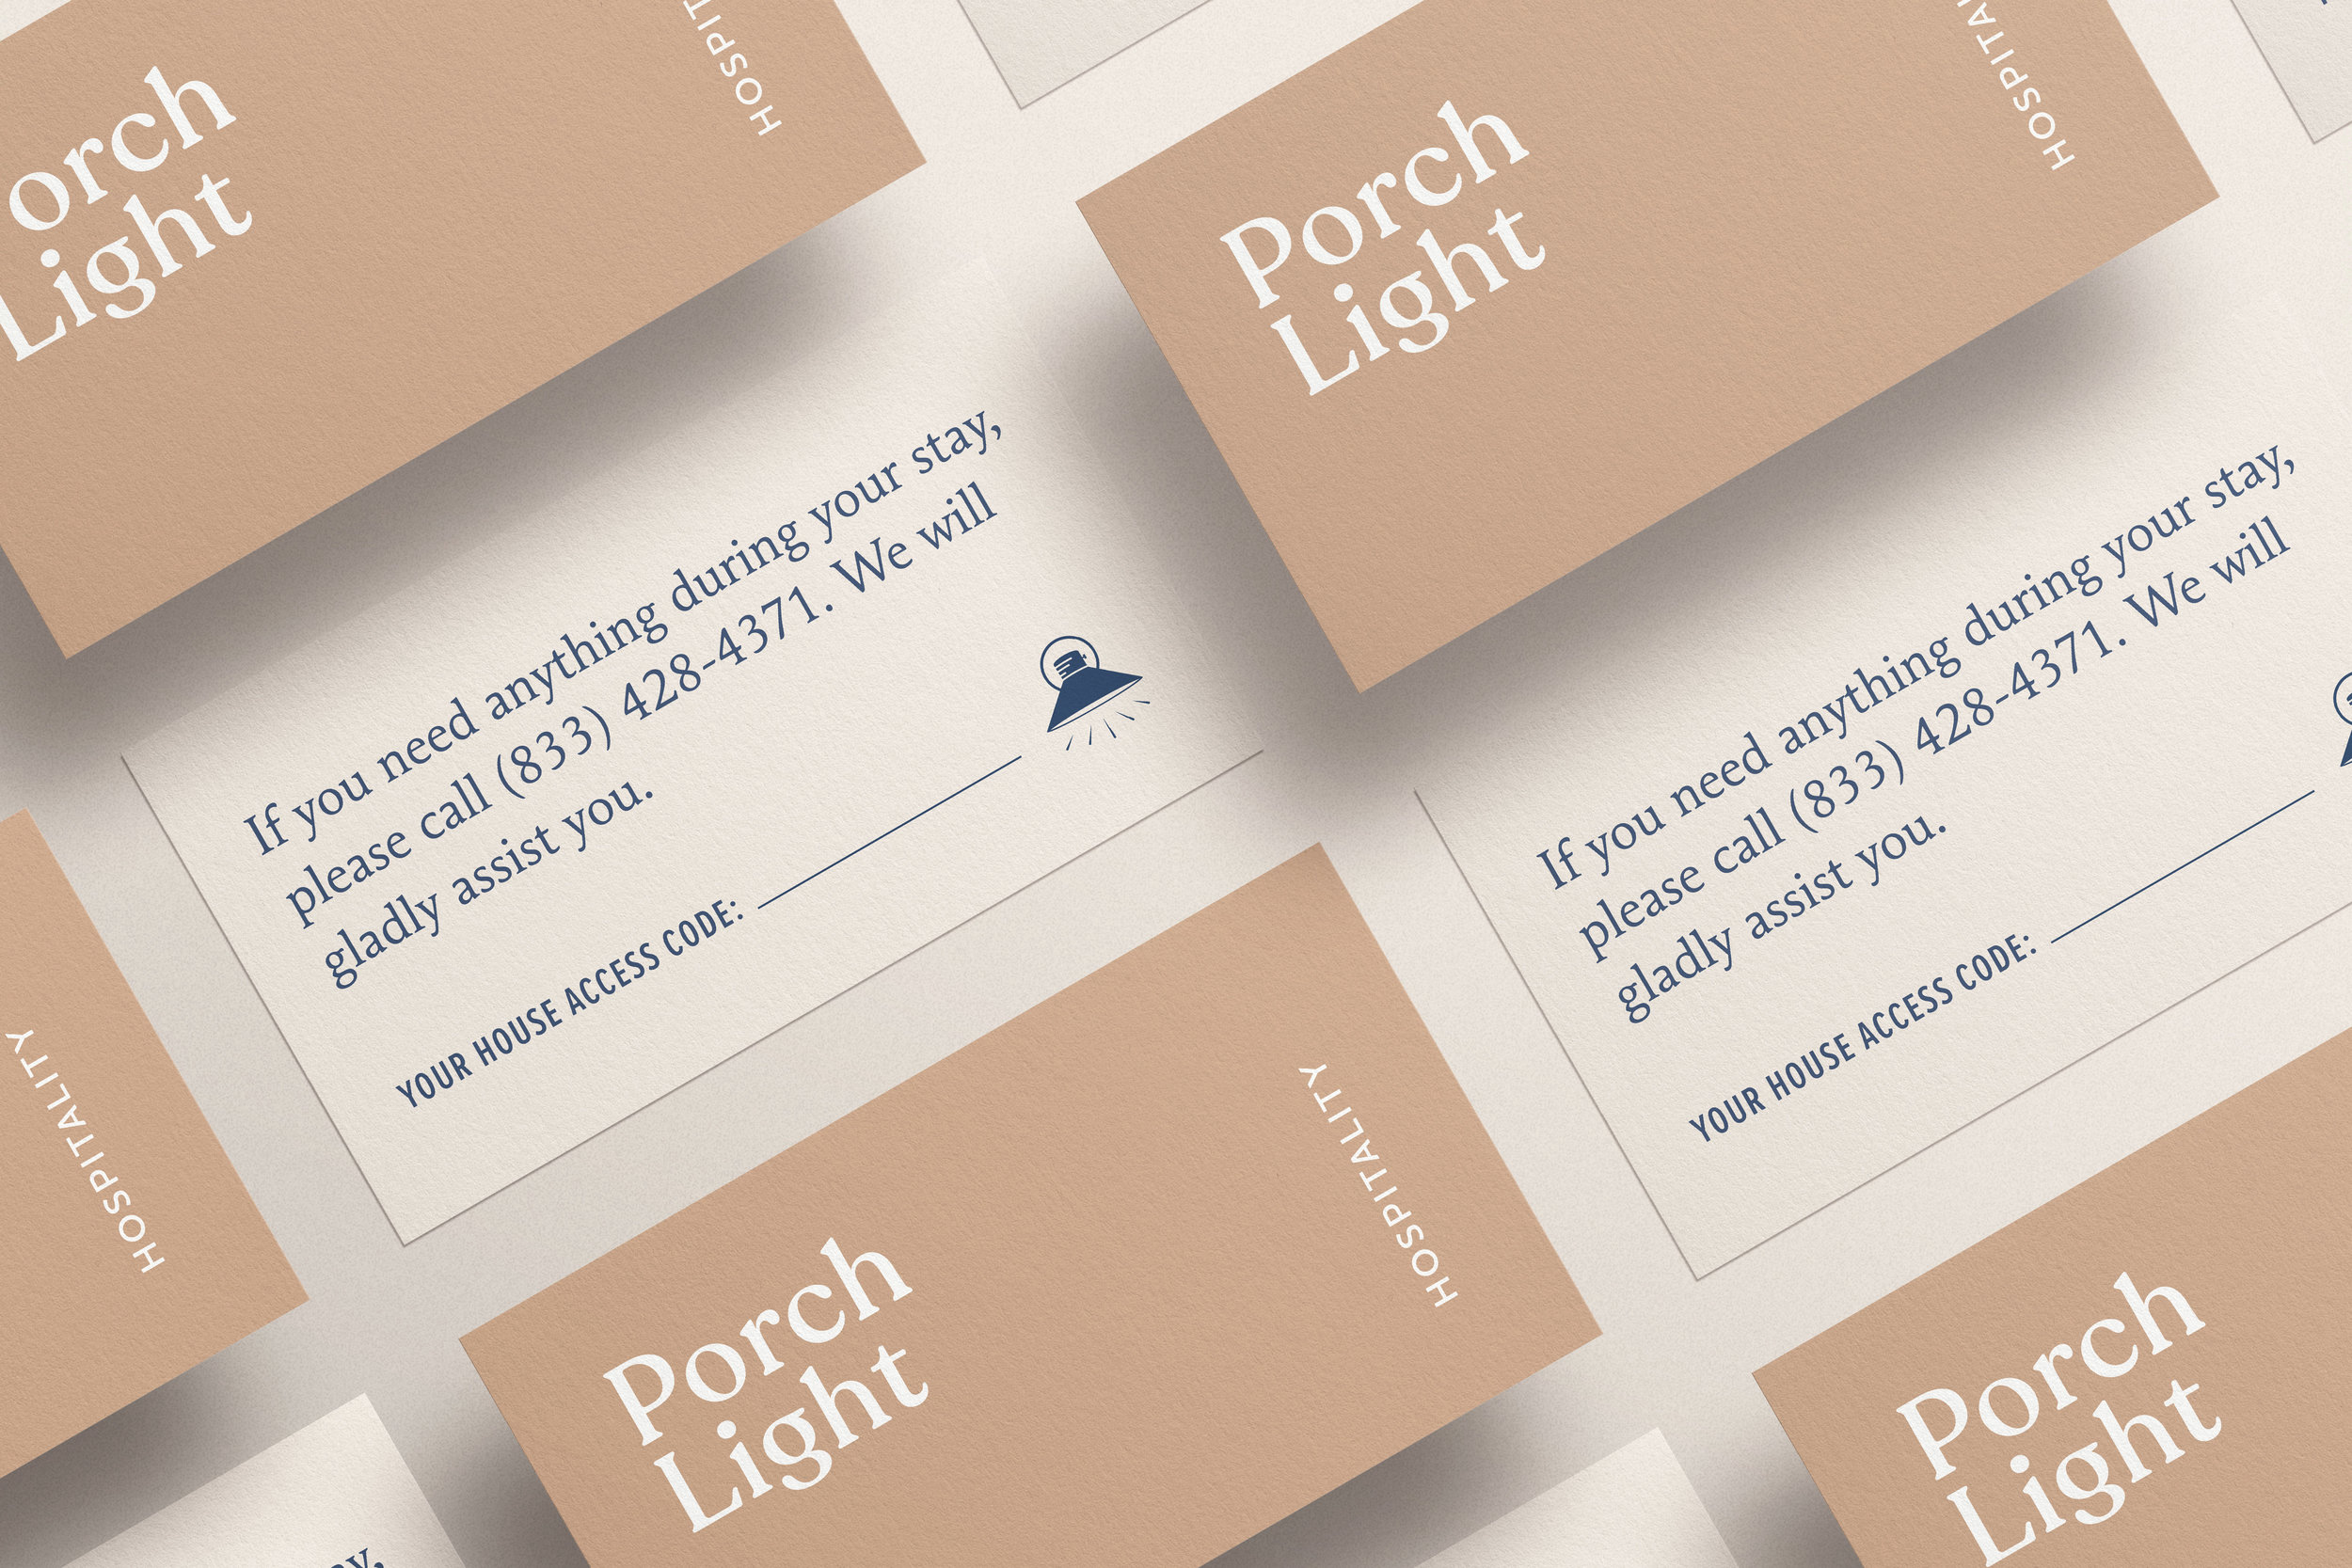 porch light business card.jpg